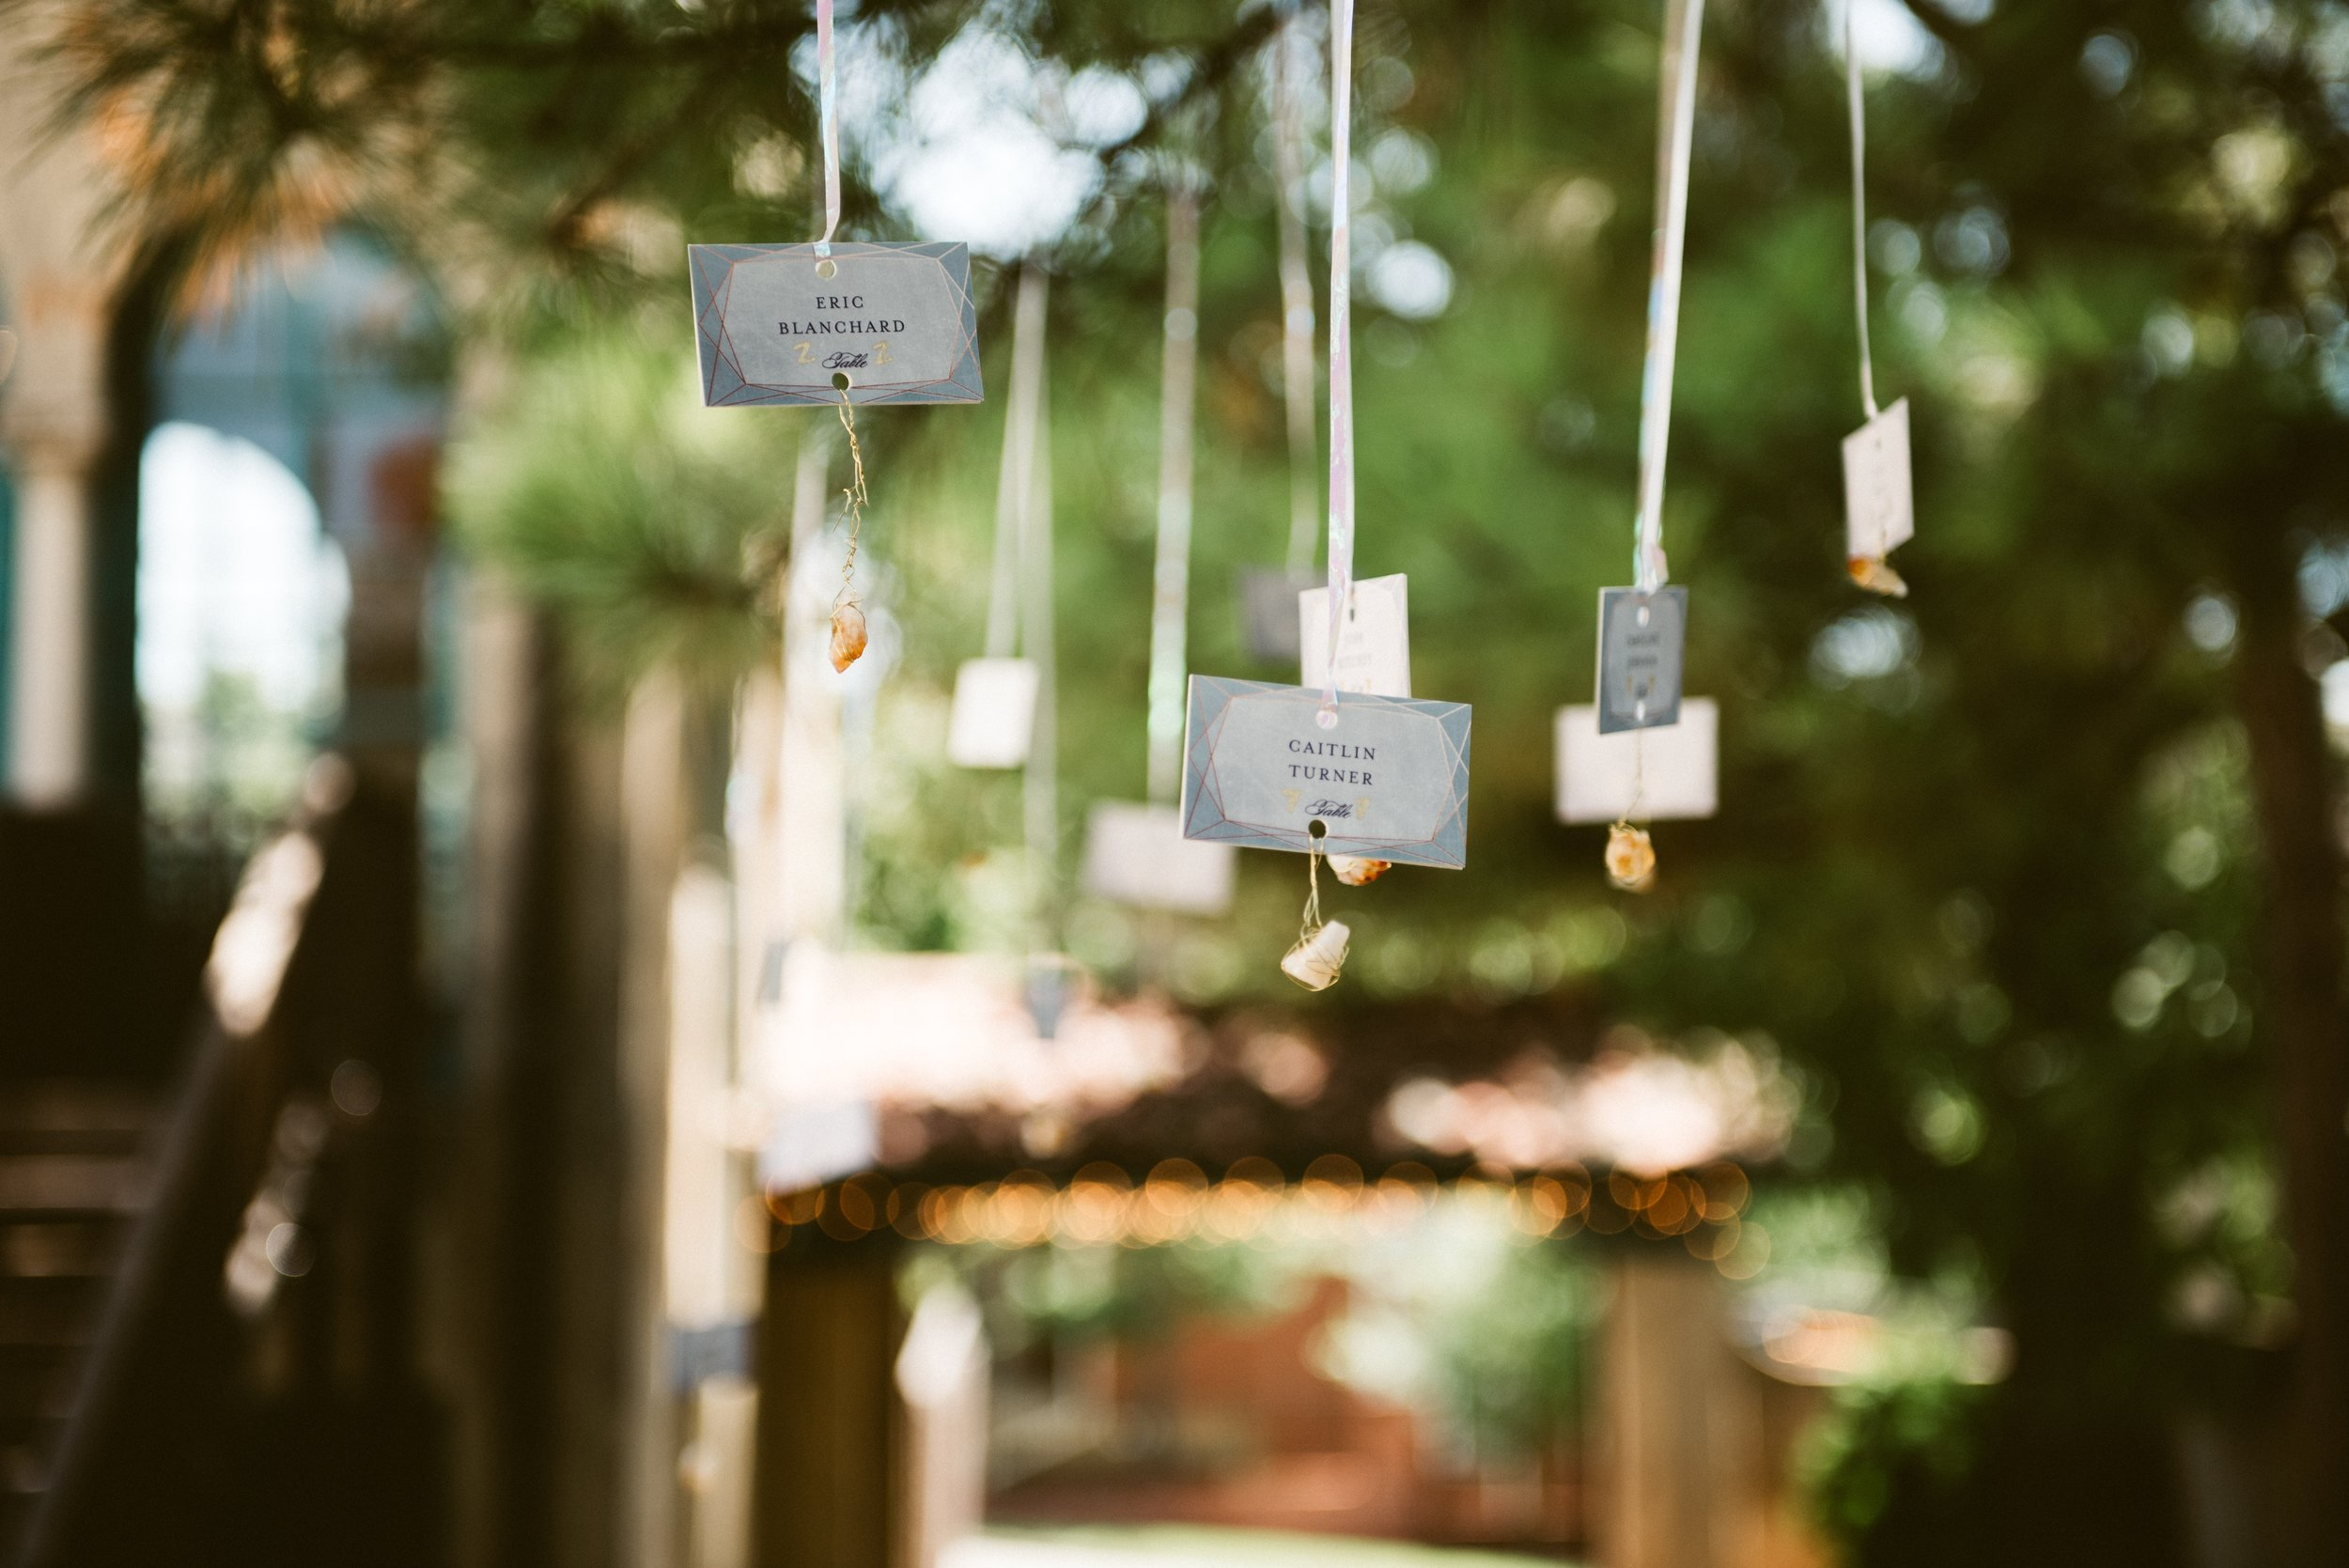 The place cards hanging from the trees were one of my favorite details. I love when brides get creative with the little details!